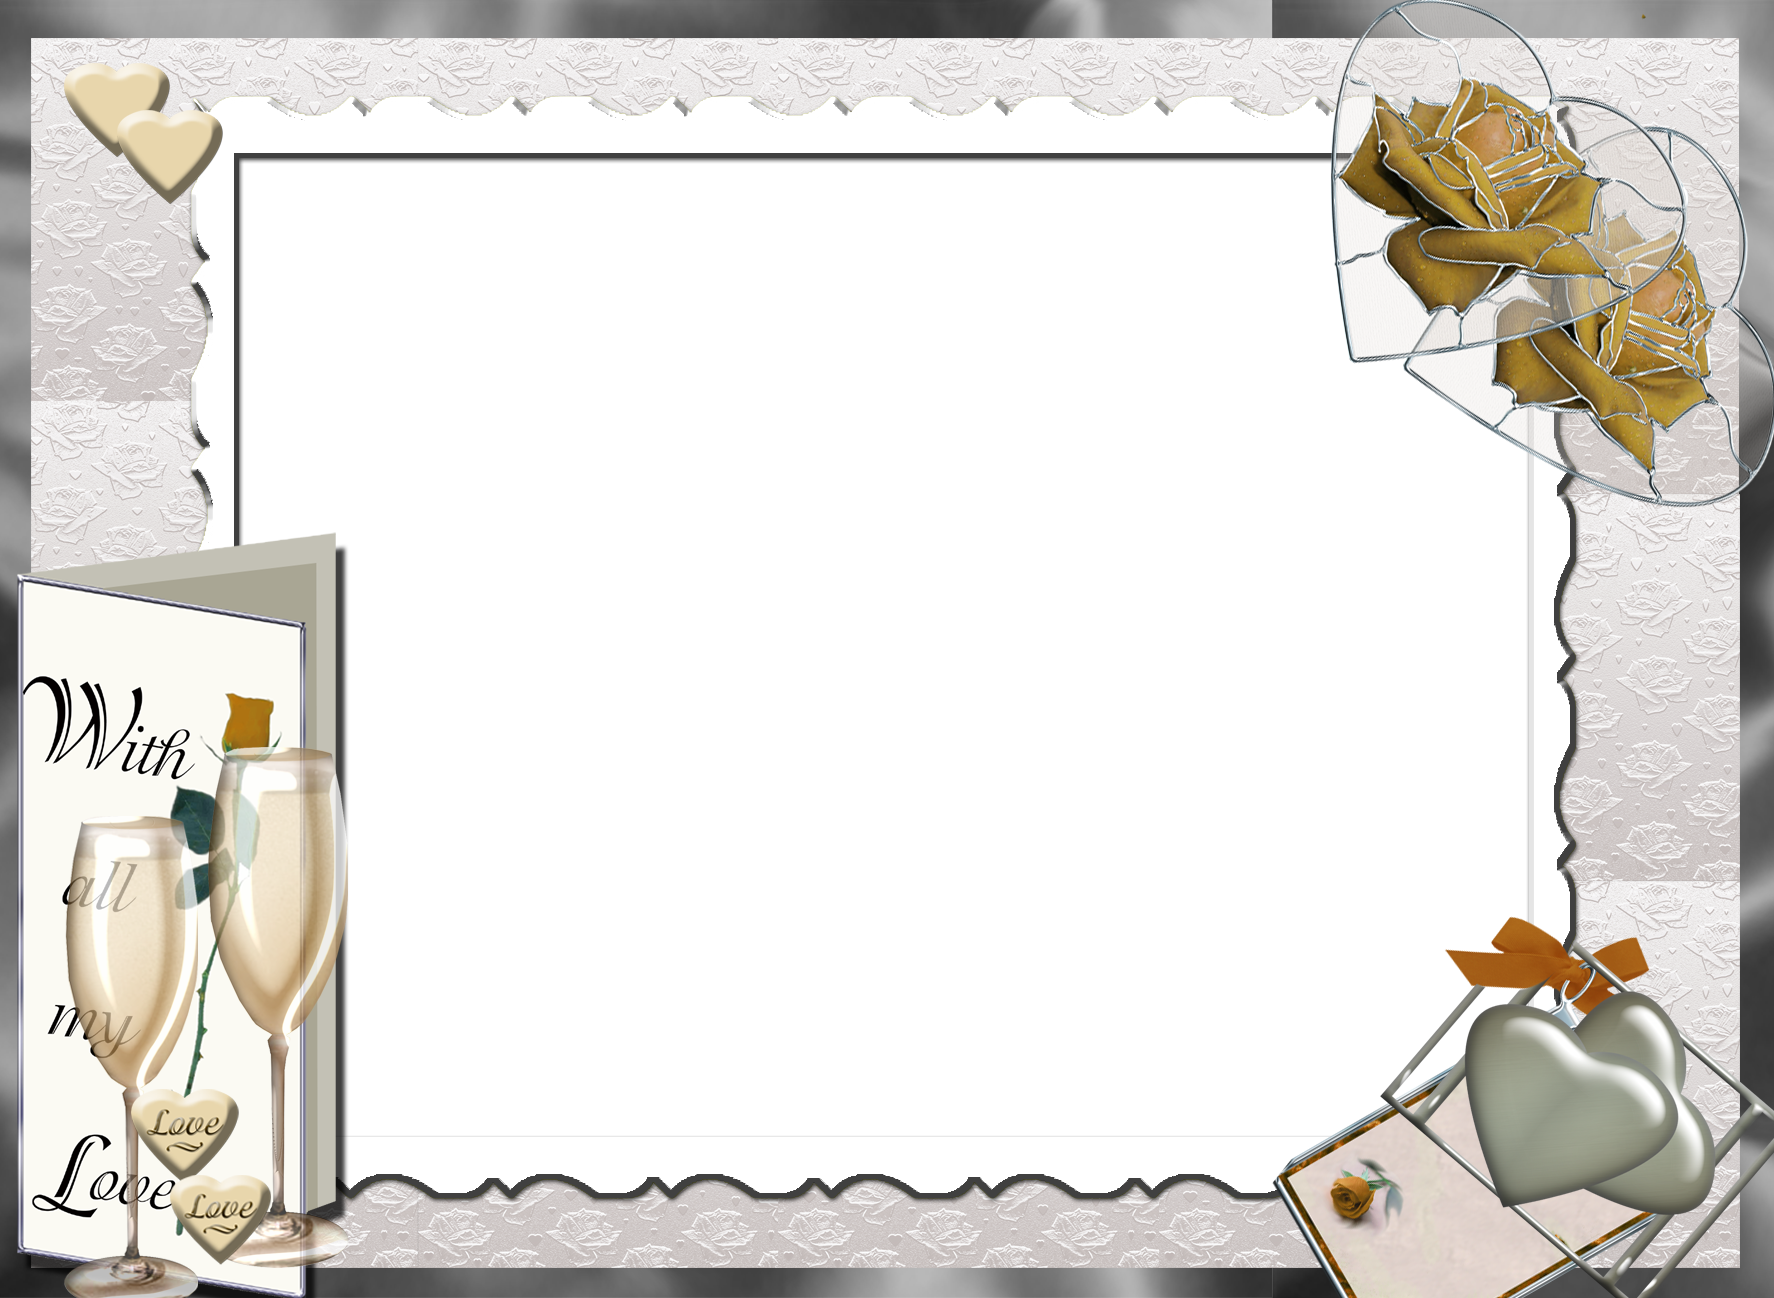 PNG Wedding Frames http://www.fanpop.com/clubs/photo-frames/images/22786115/title/photo-frame-photo